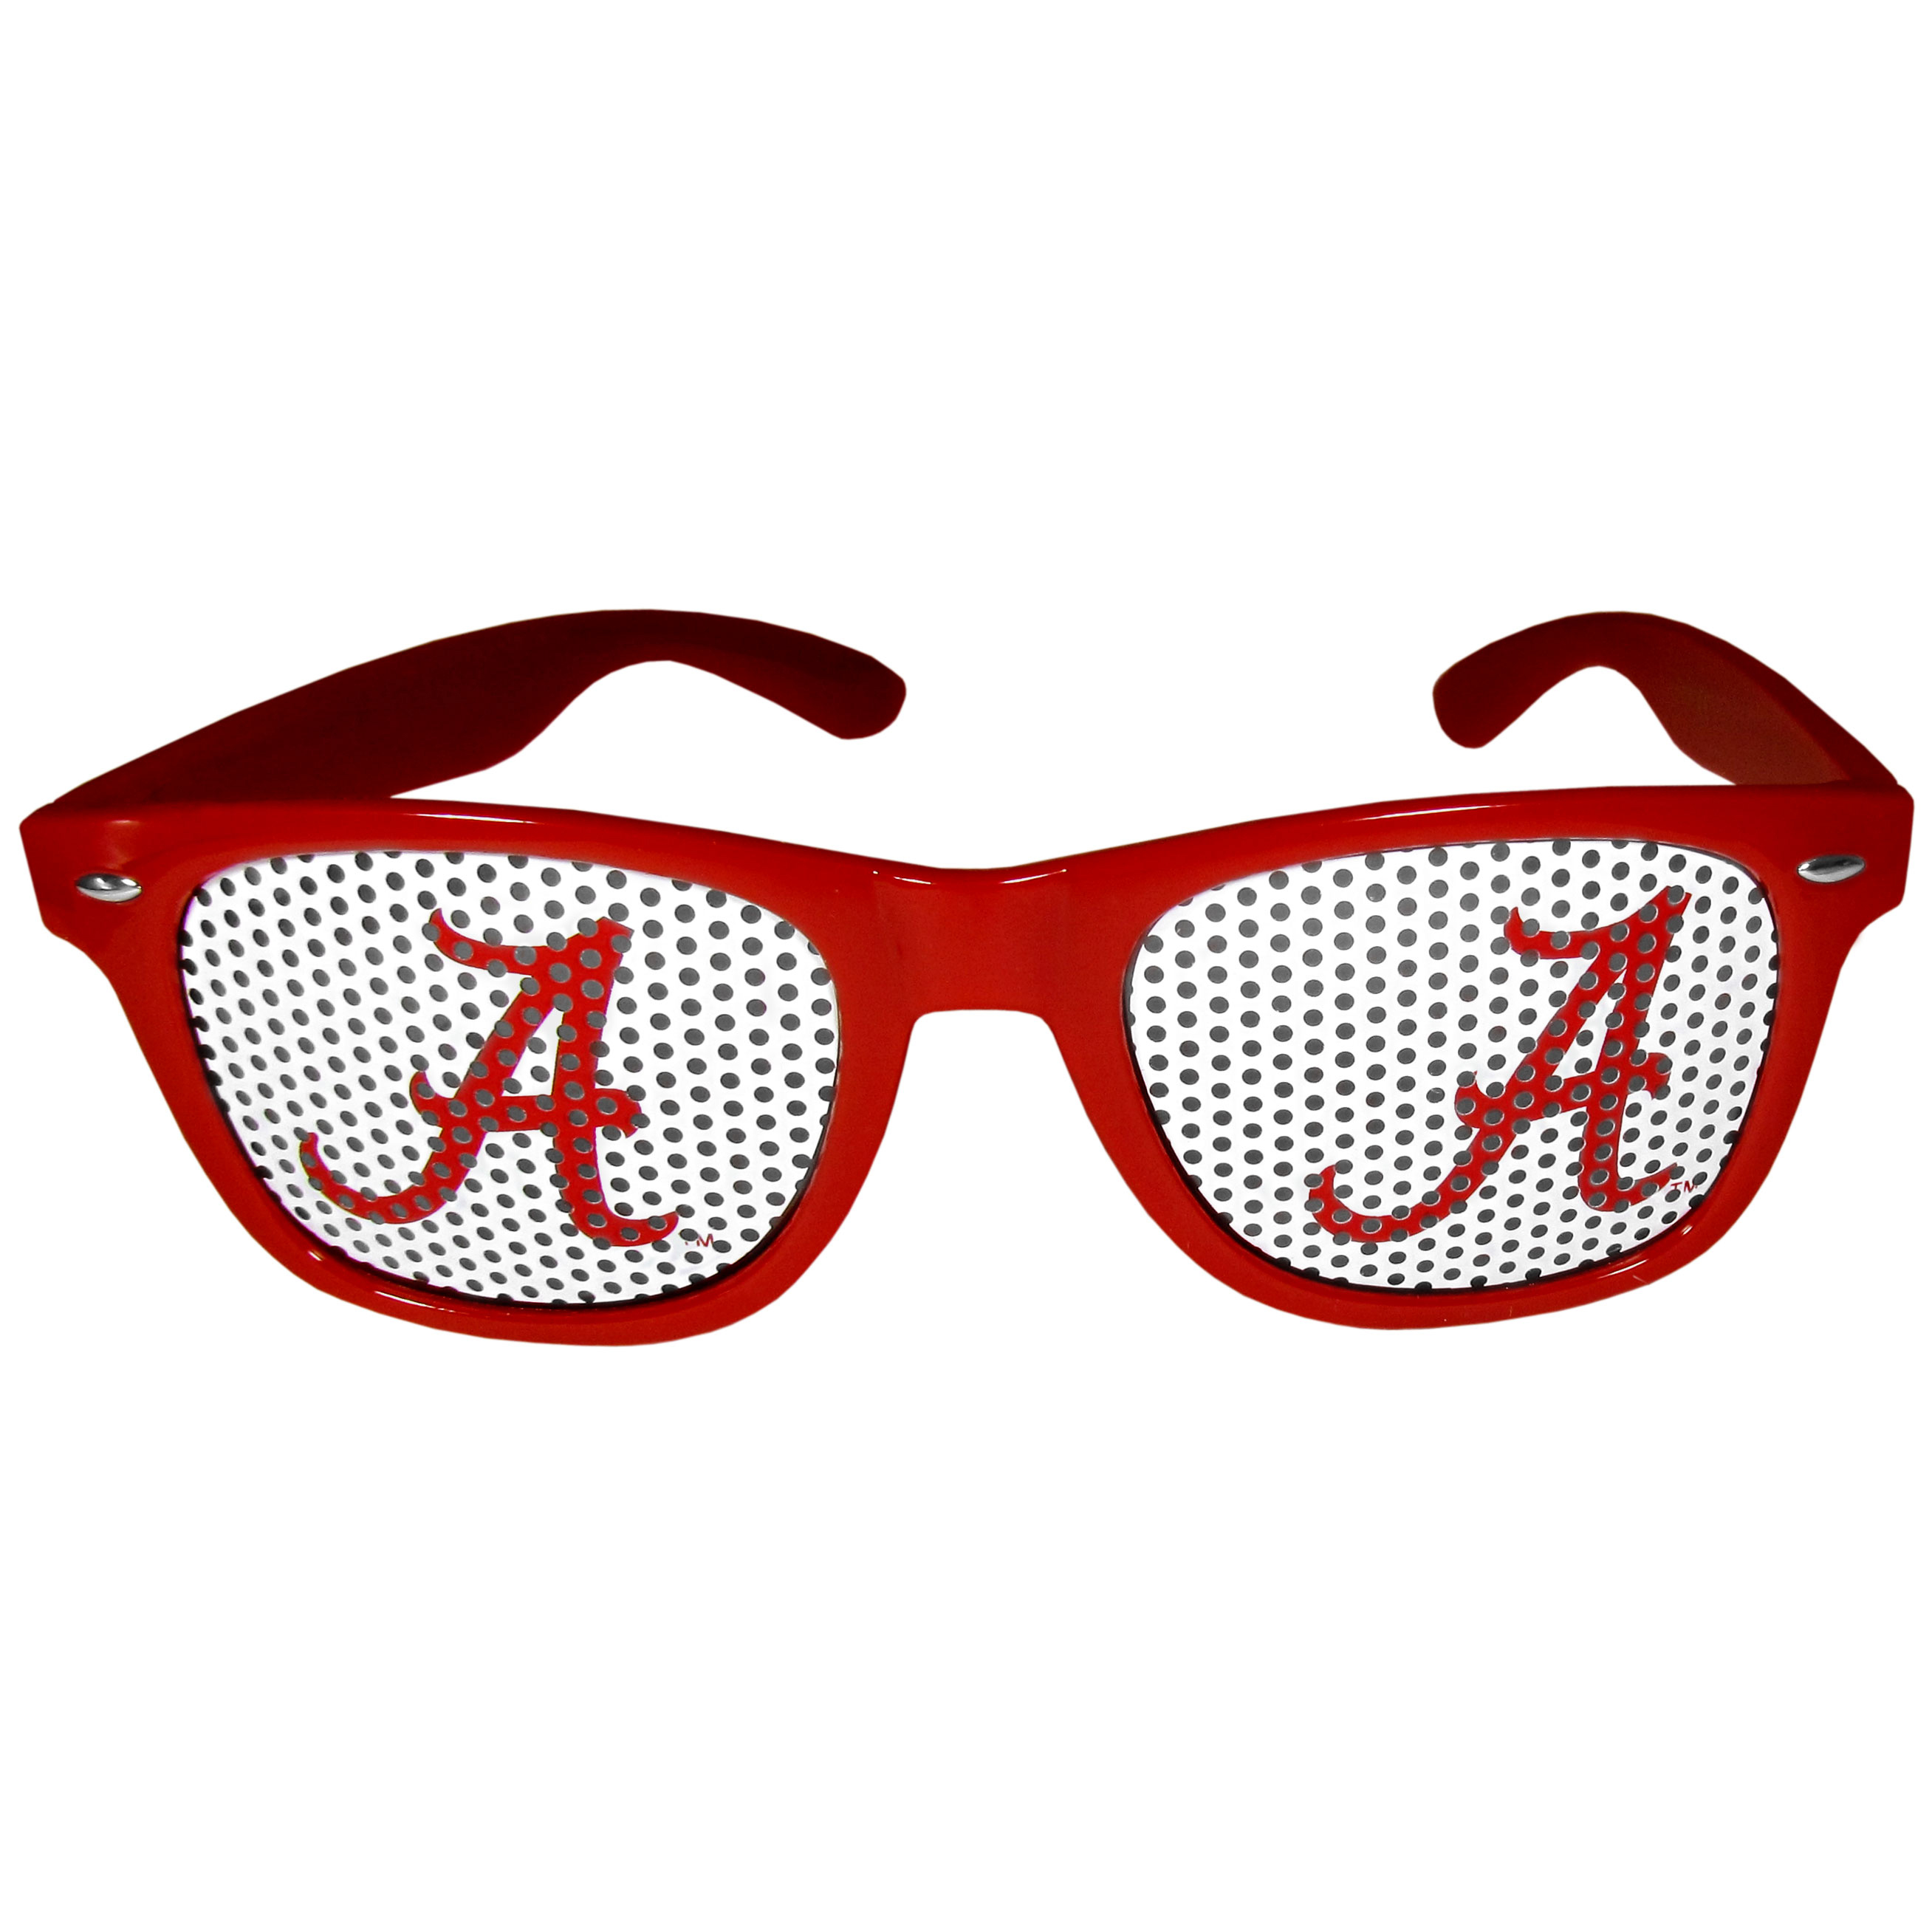 Alabama Crimson Tide Game Day Shades - Our officially licensed game day shades are the perfect accessory for the devoted Alabama Crimson Tide fan! The sunglasses have durable polycarbonate frames with flex hinges for comfort and damage resistance. The lenses feature brightly colored team clings that are perforated for visibility.